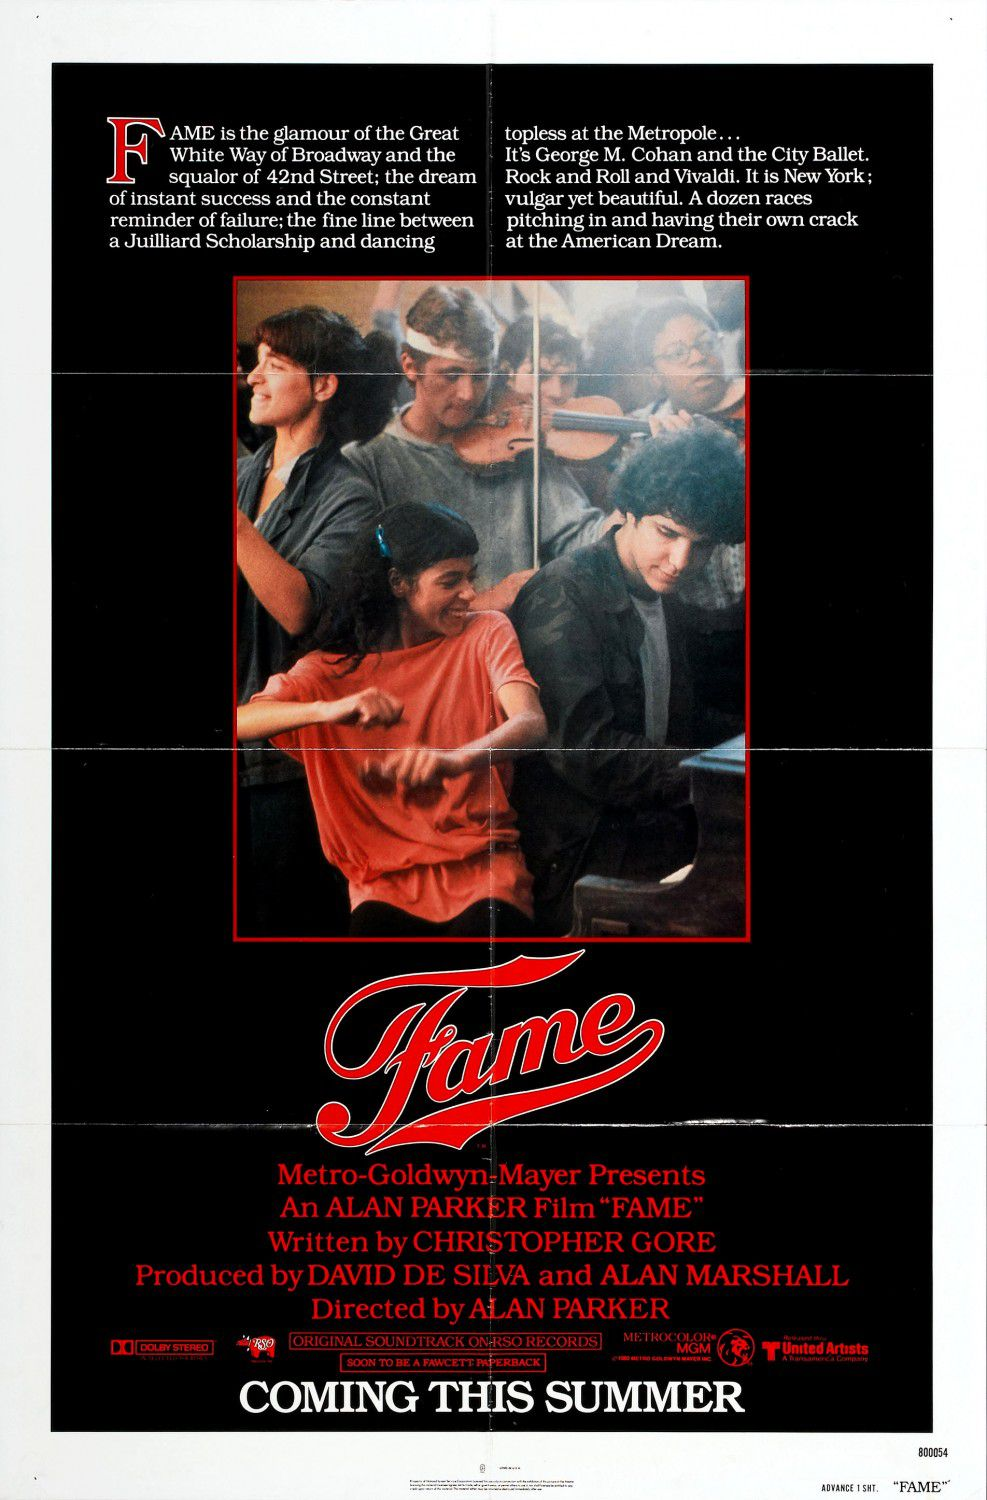 Musical - Fame (1980) - film poster 80s - Alan Parker movie